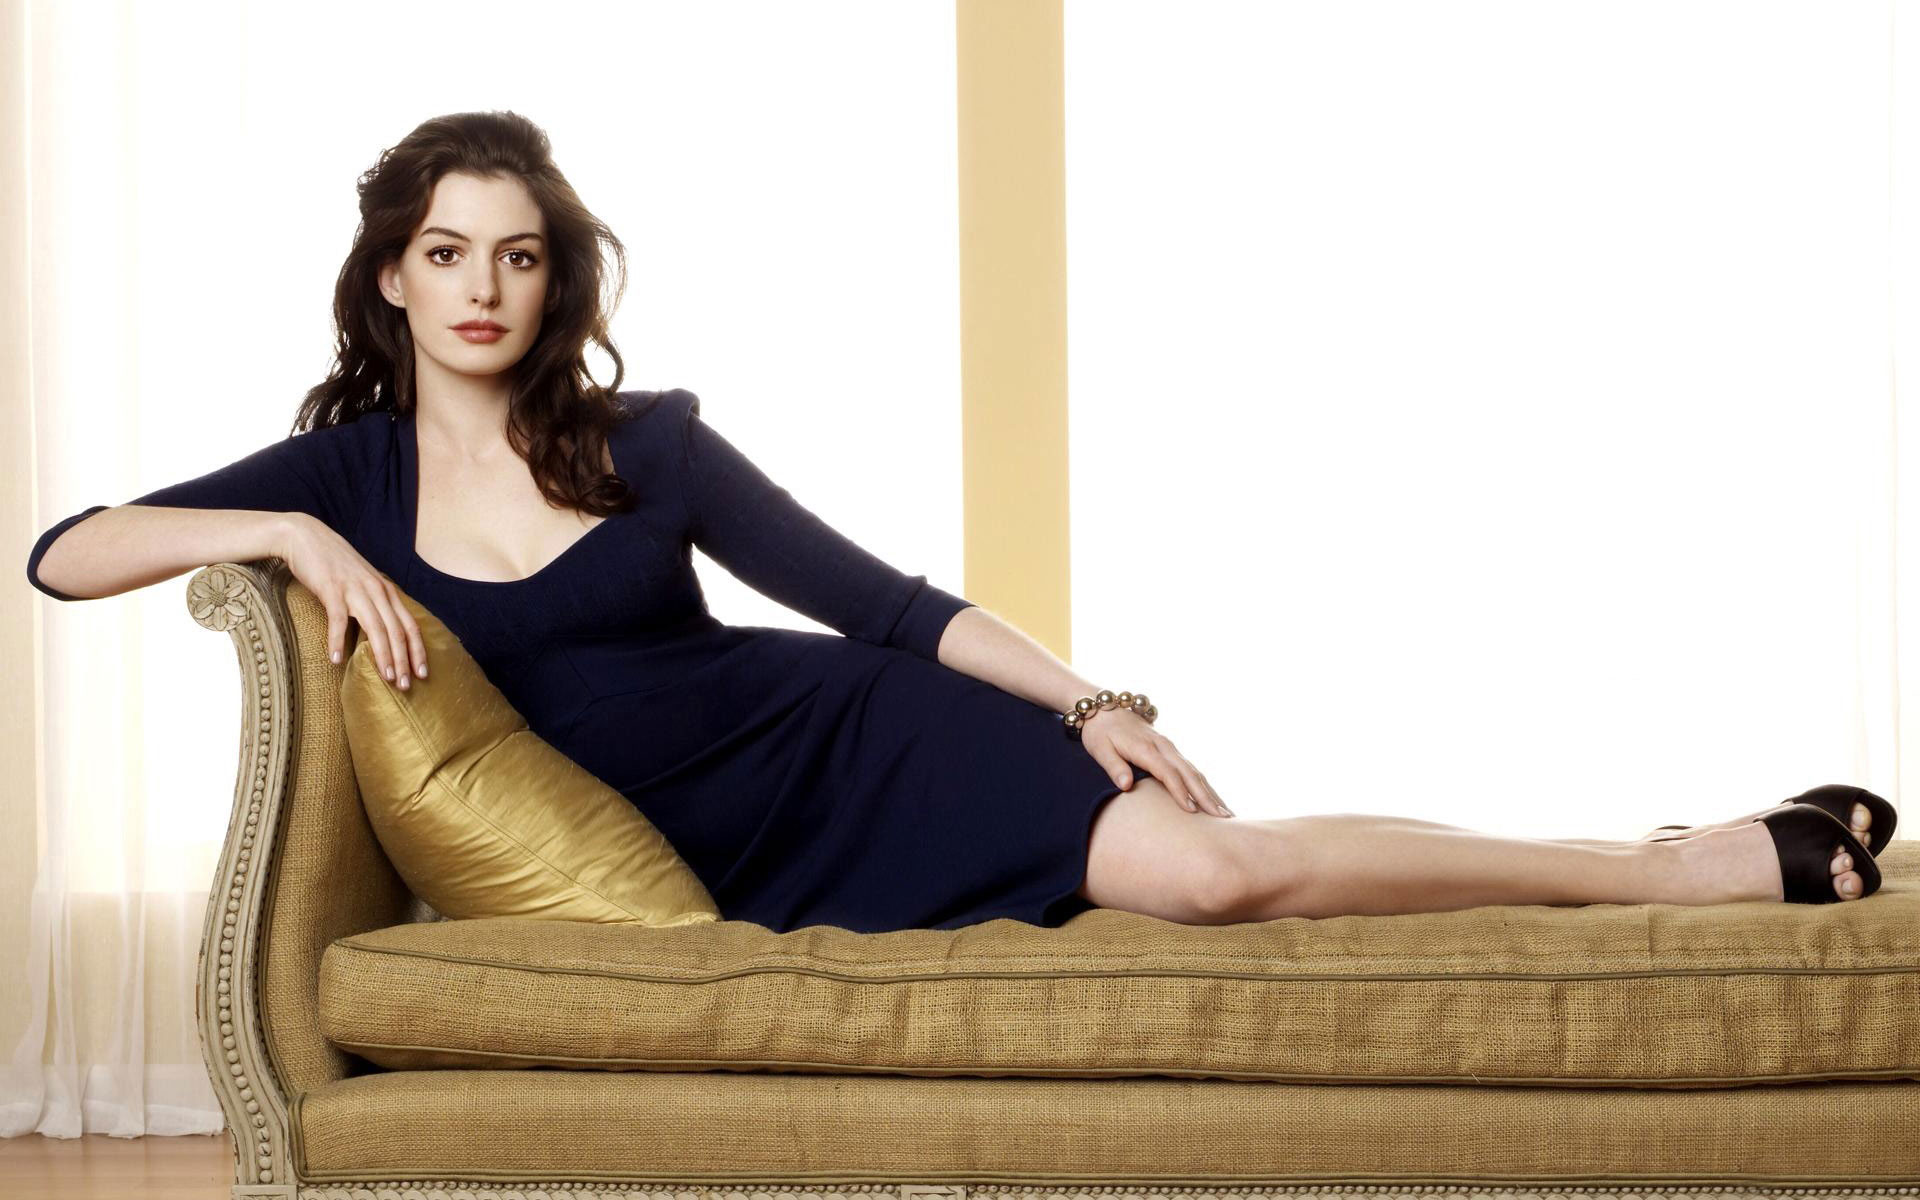 Bride Wars Actress Anne Hathaway